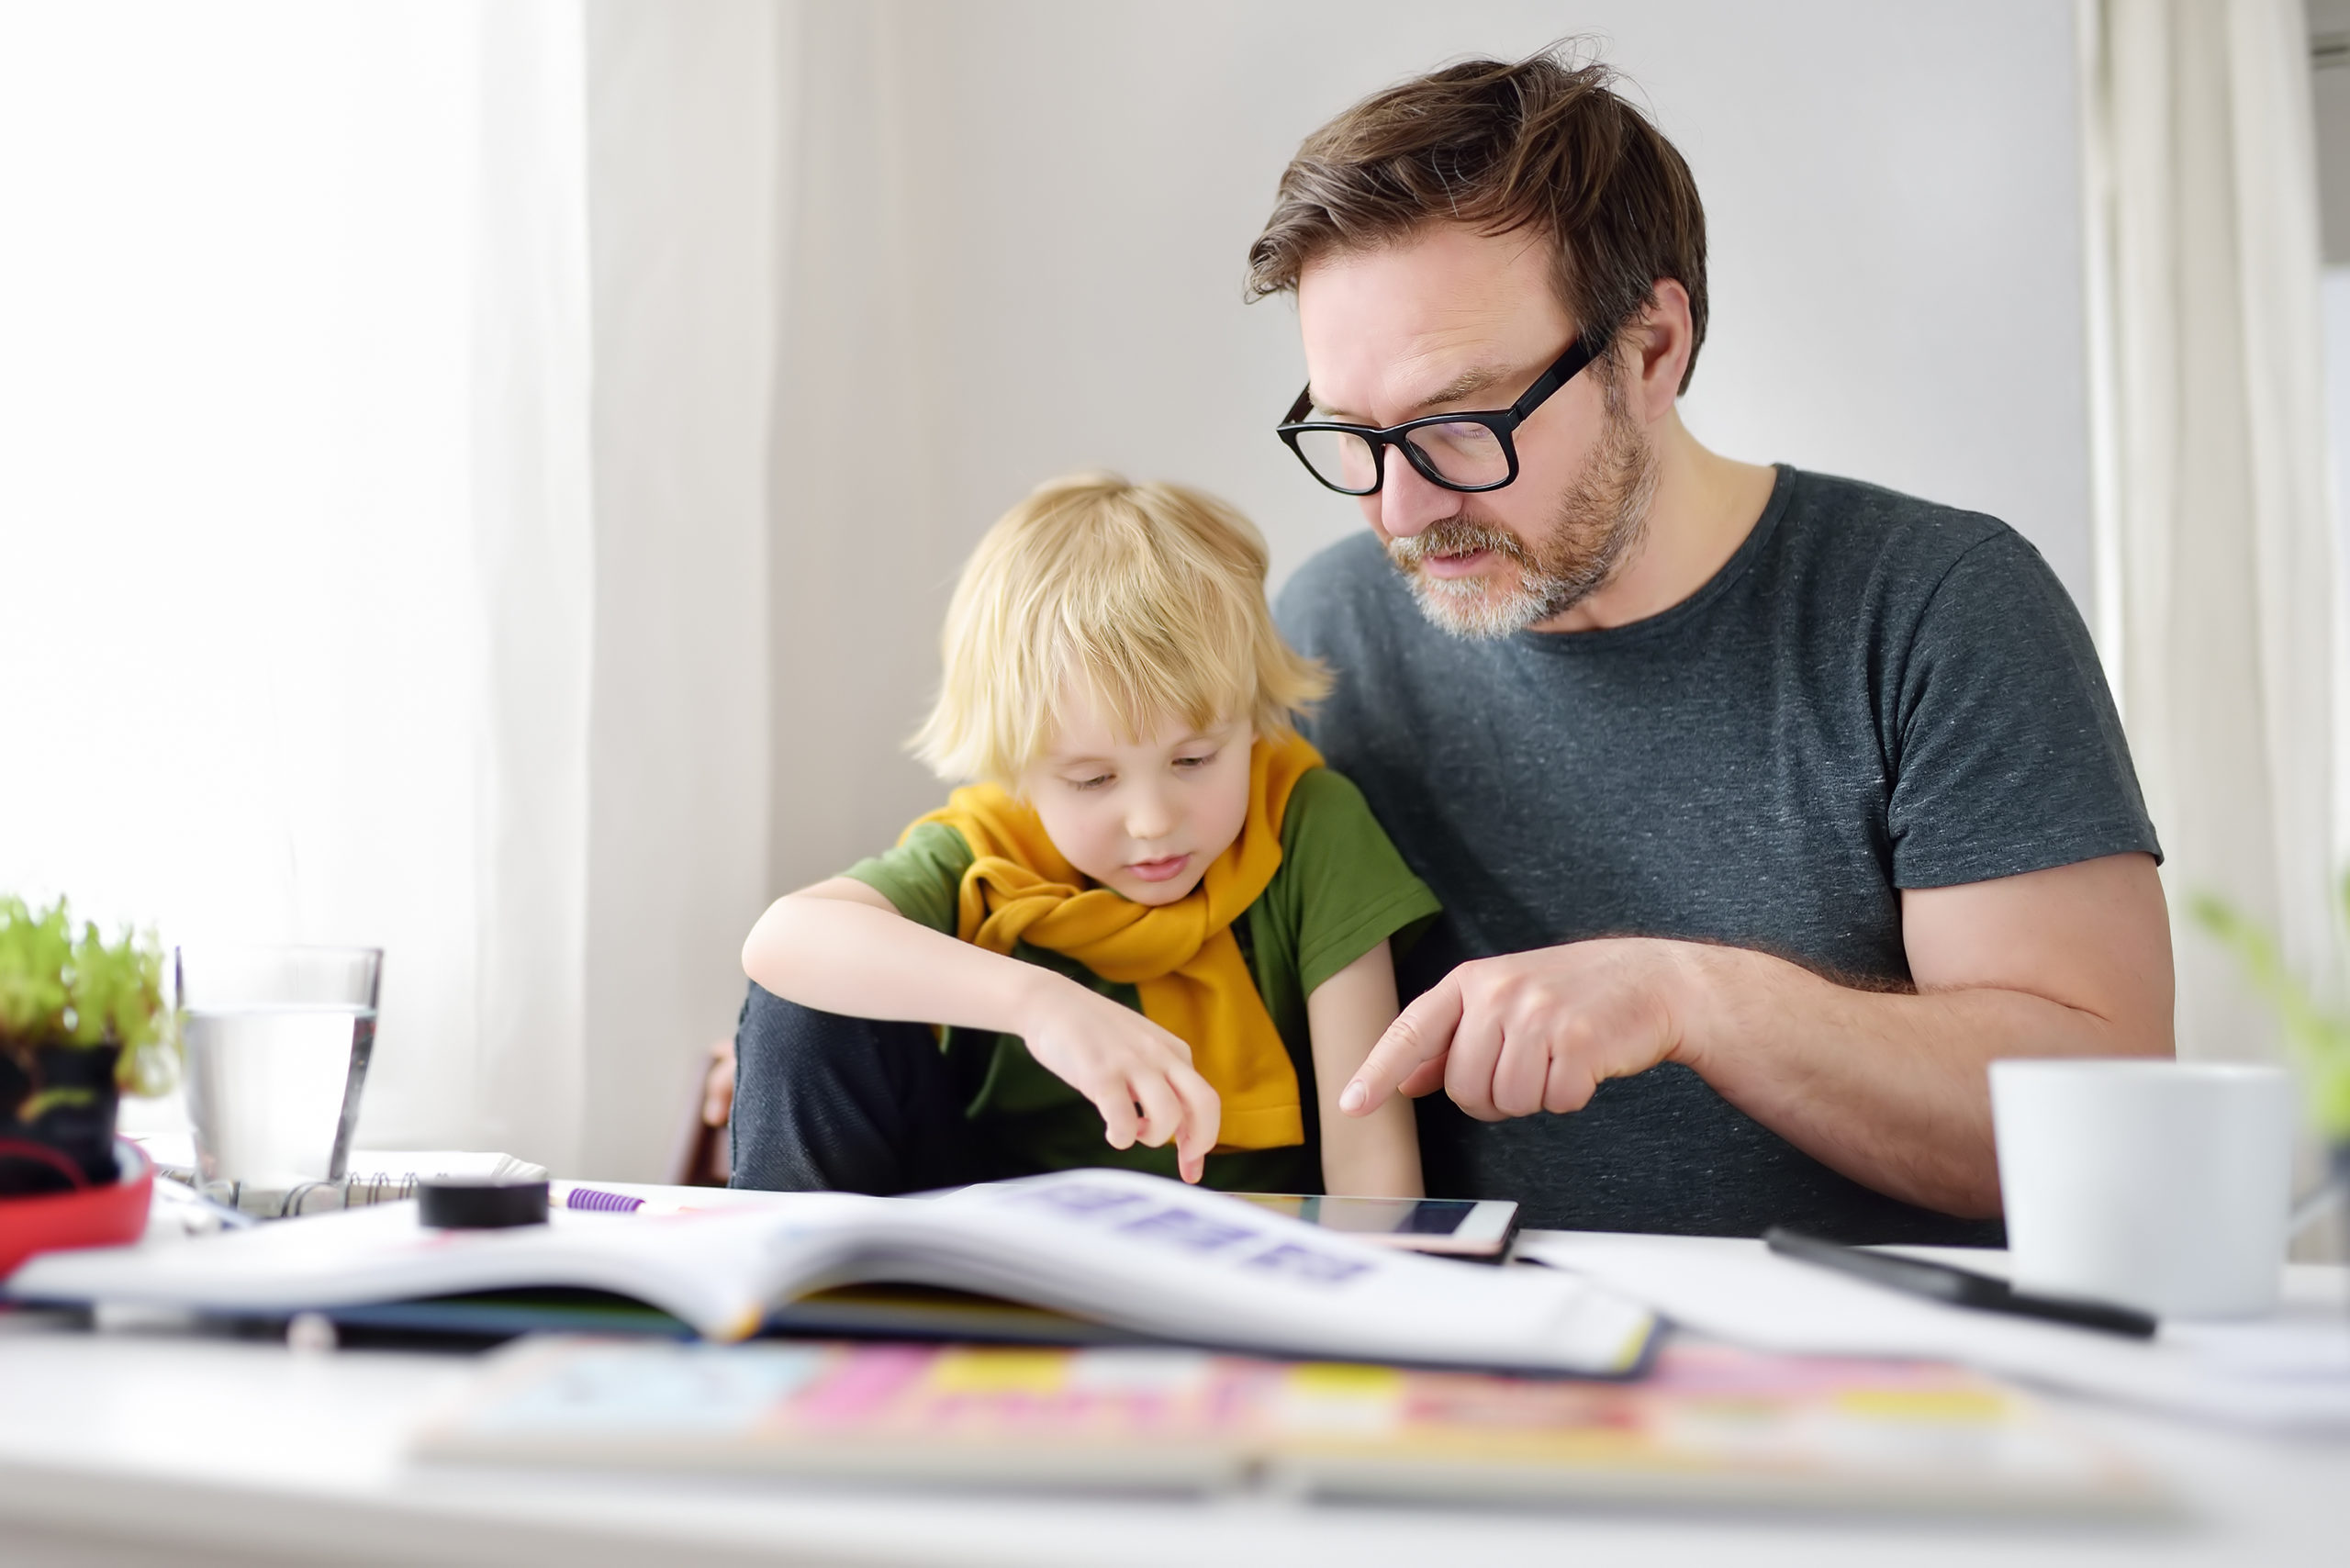 A foster carer working with a child with ADHD